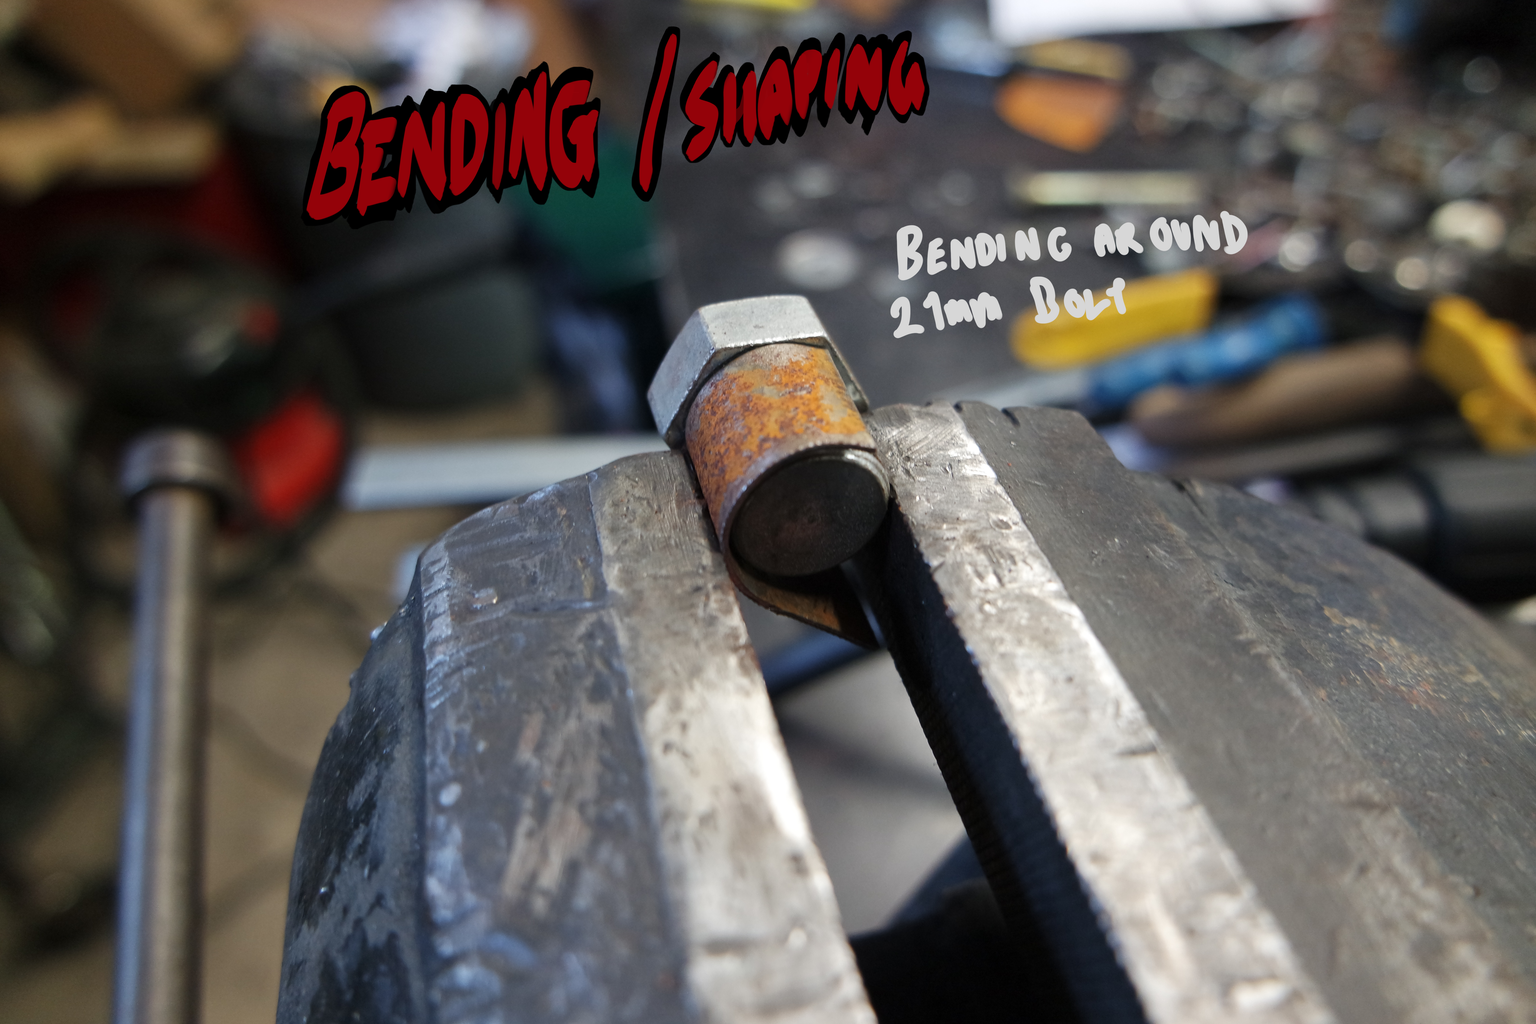 Bending and Forming